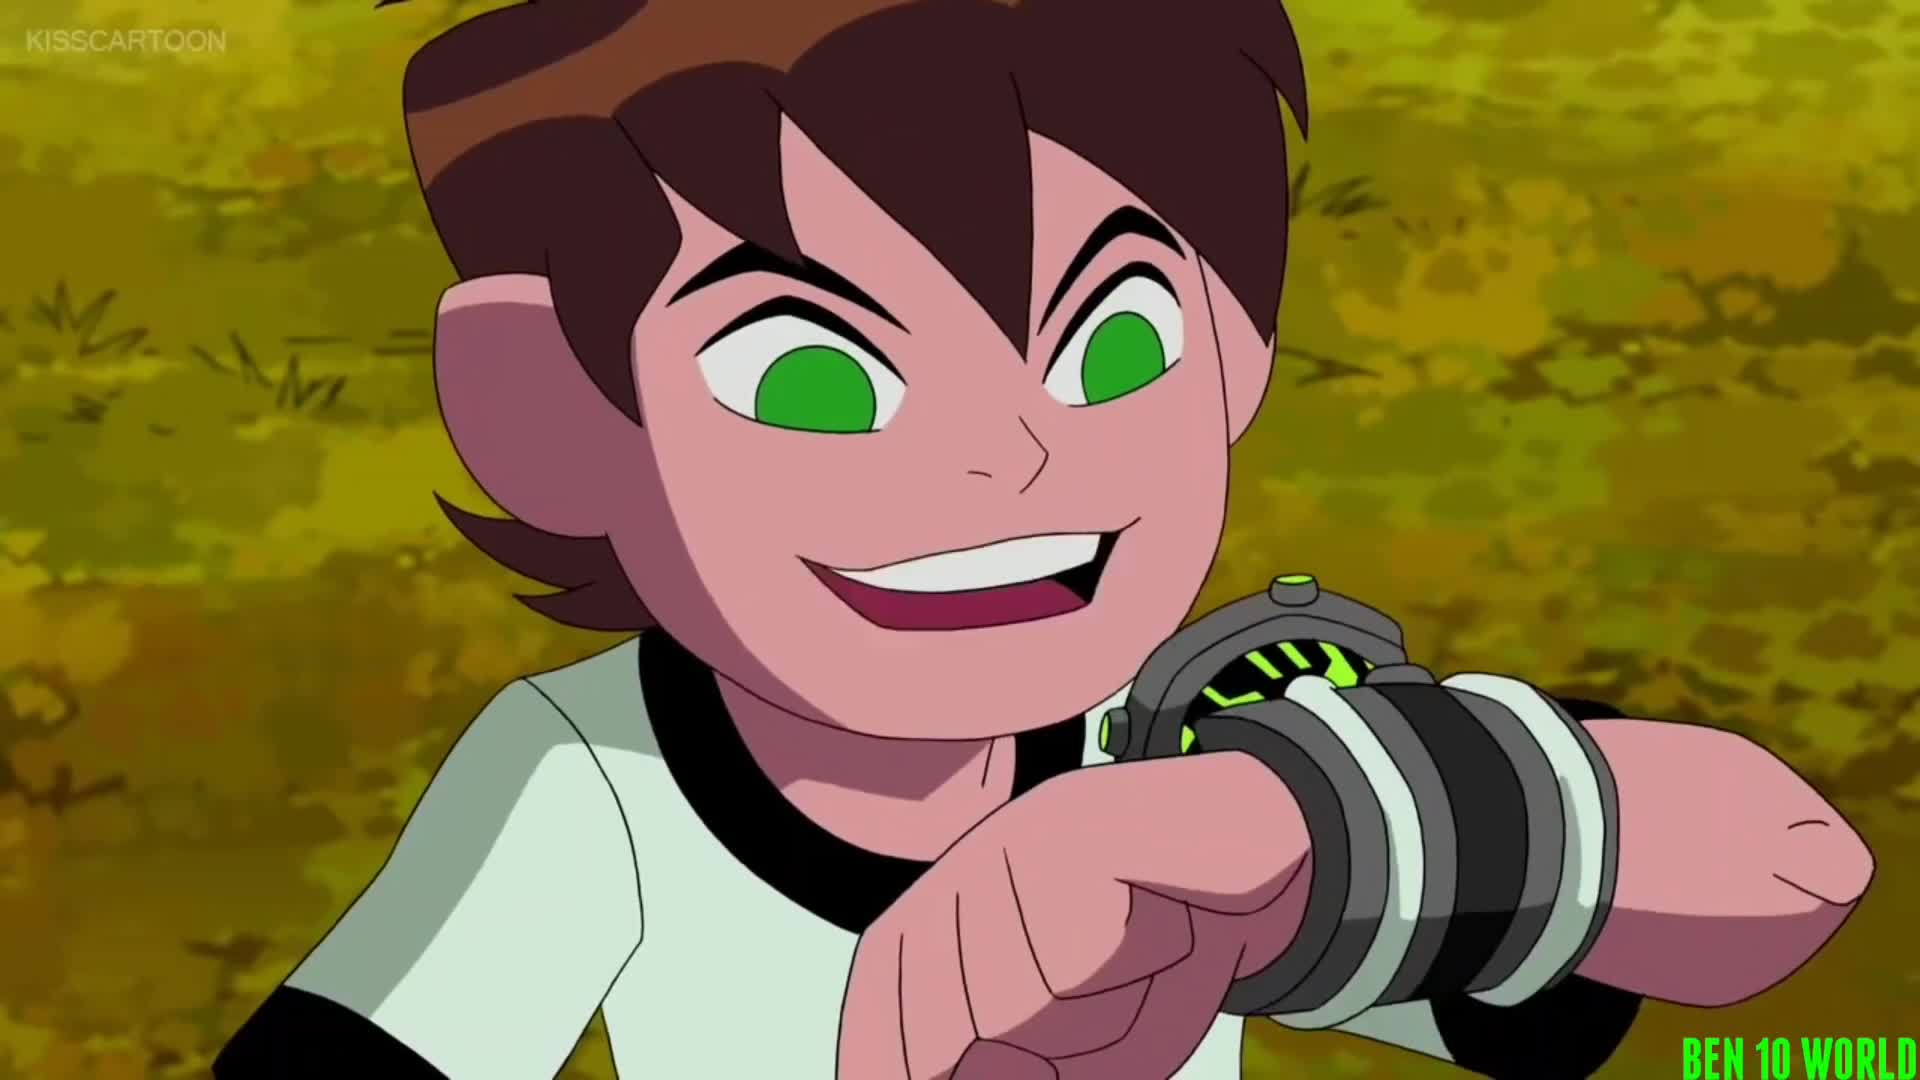 Ben 10 Movie Gifs Search | Search & Share on Homdor